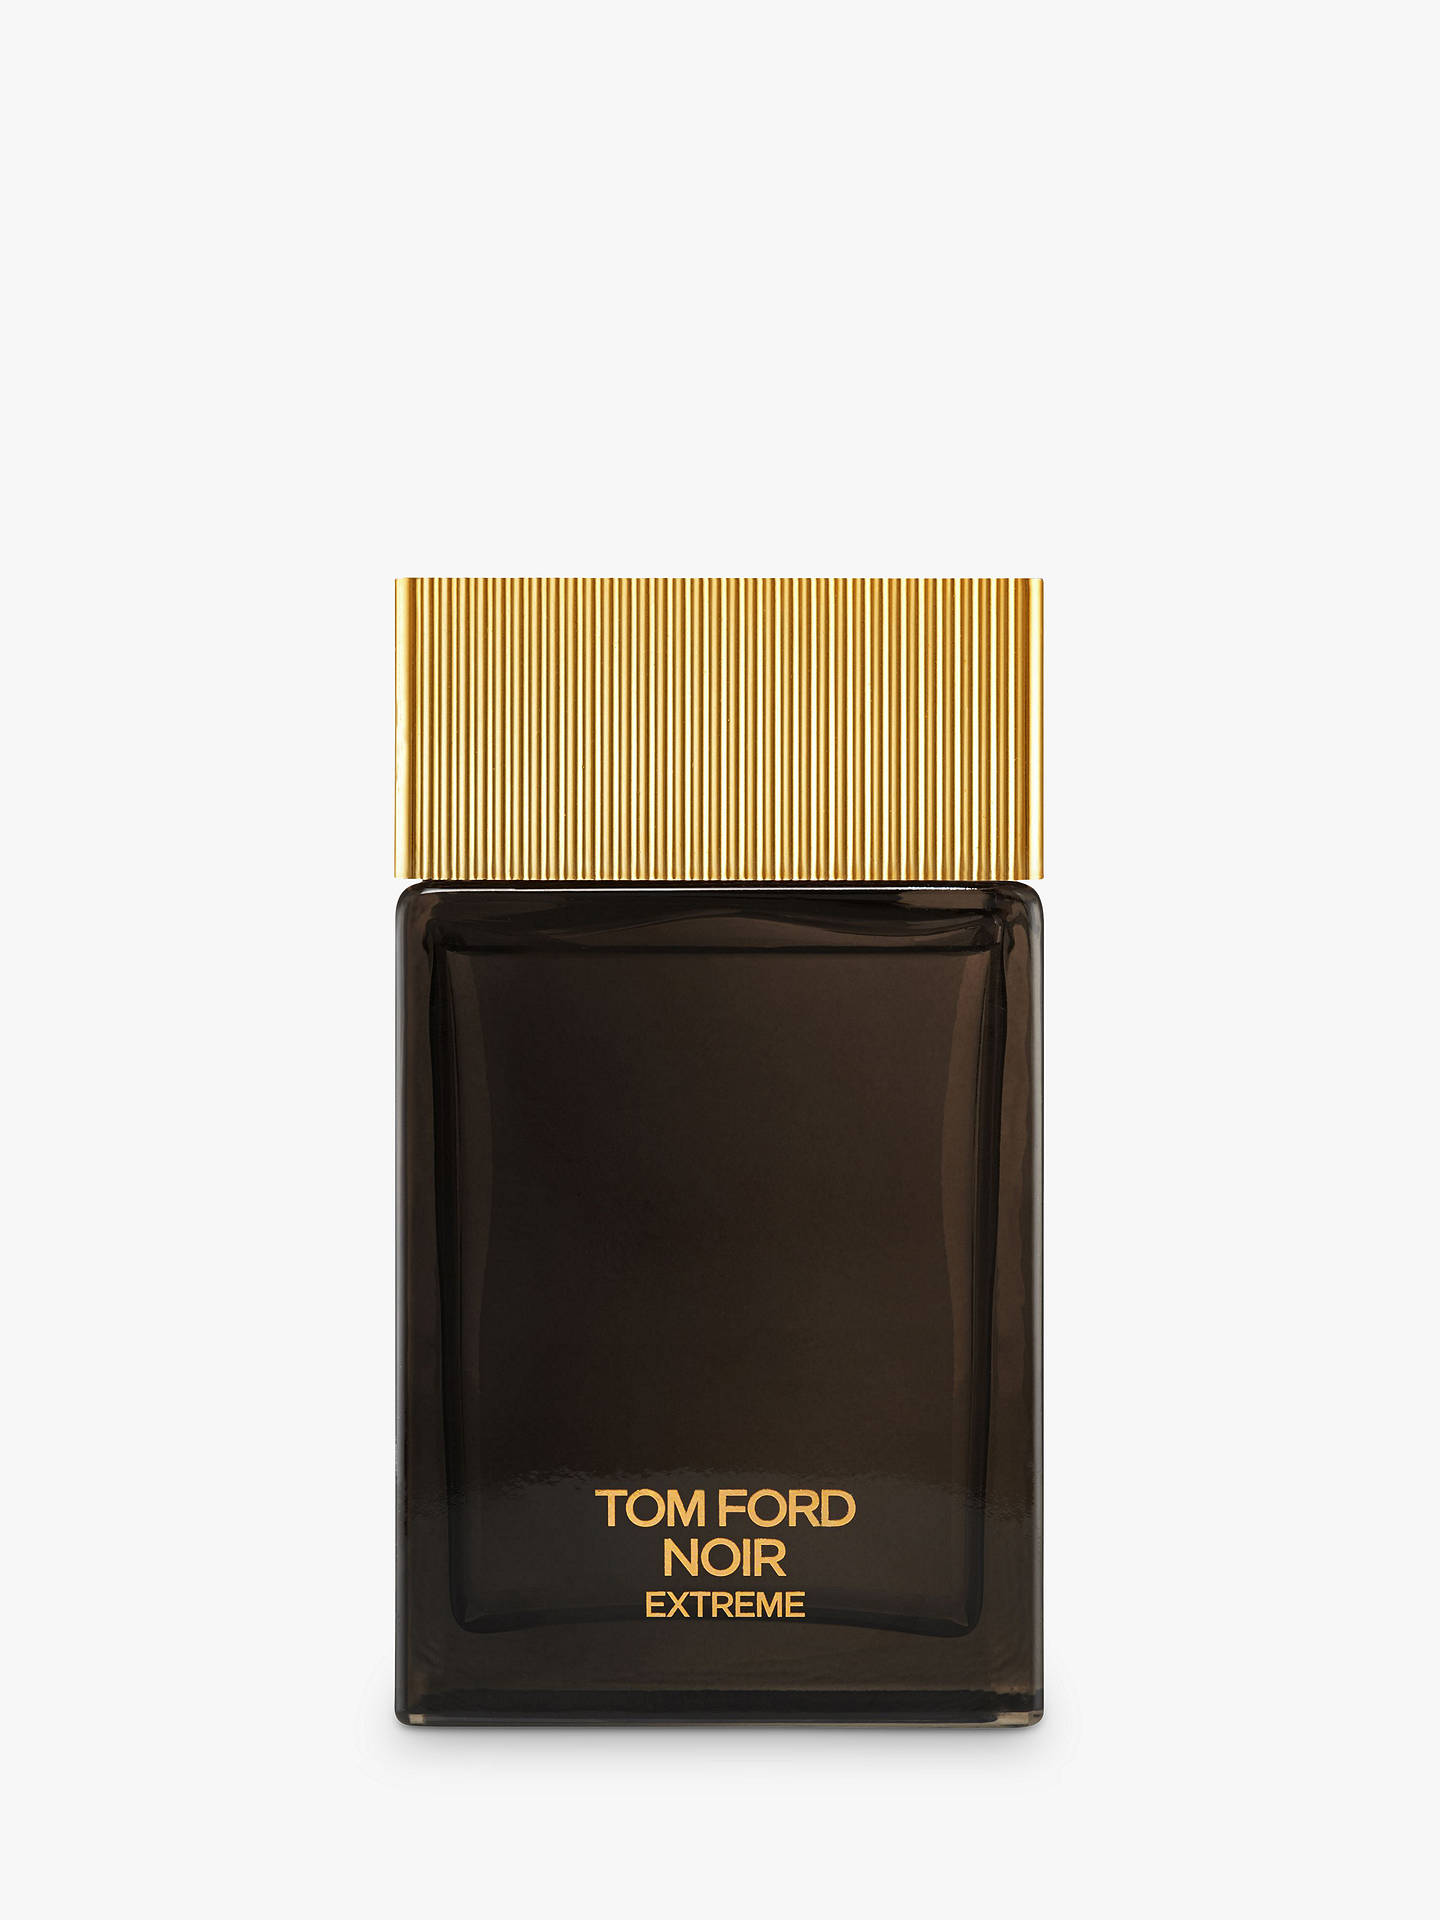 tom ford noir extreme 100ml at john lewis partners. Black Bedroom Furniture Sets. Home Design Ideas